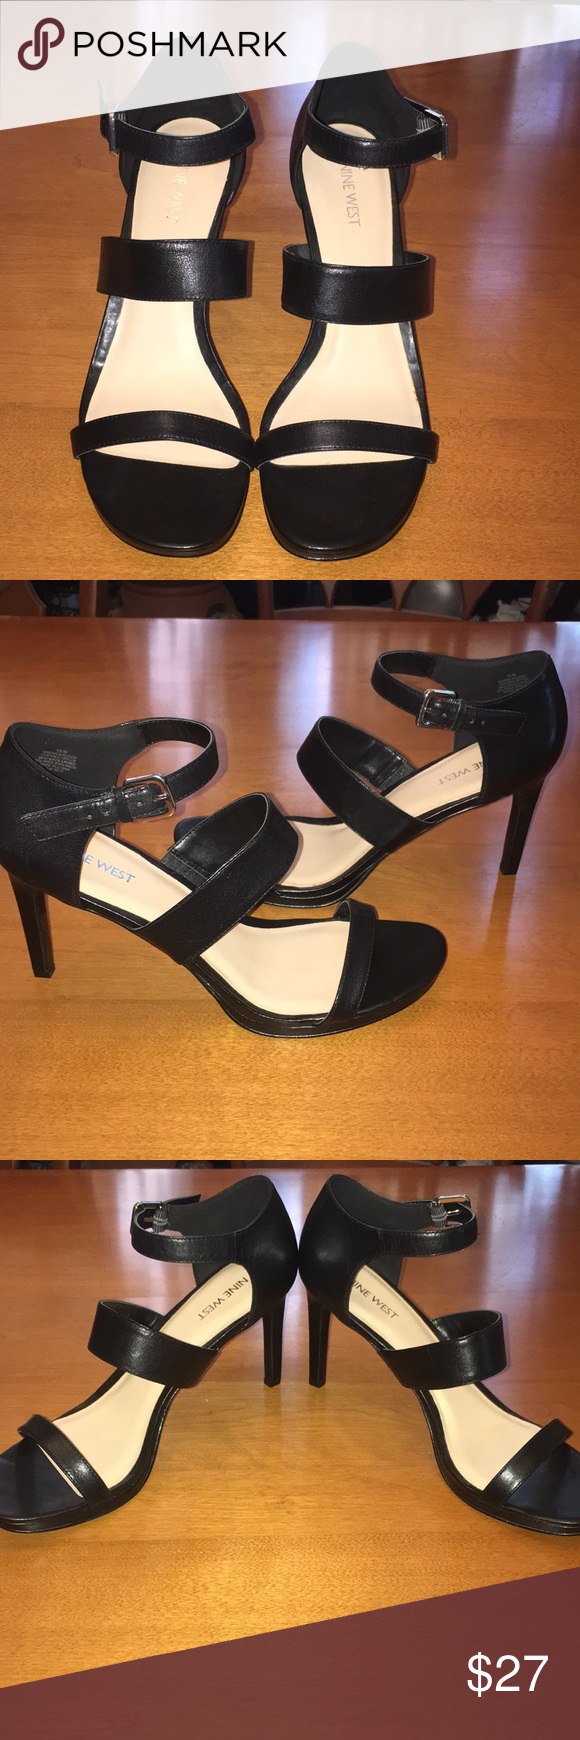 0692e0235e Nine West black leather strapped high heel sandal Nine West Strapped  sandals Heels 10 NWOT Brand new never worn without box Silver buckle Leather  Black Nine ...